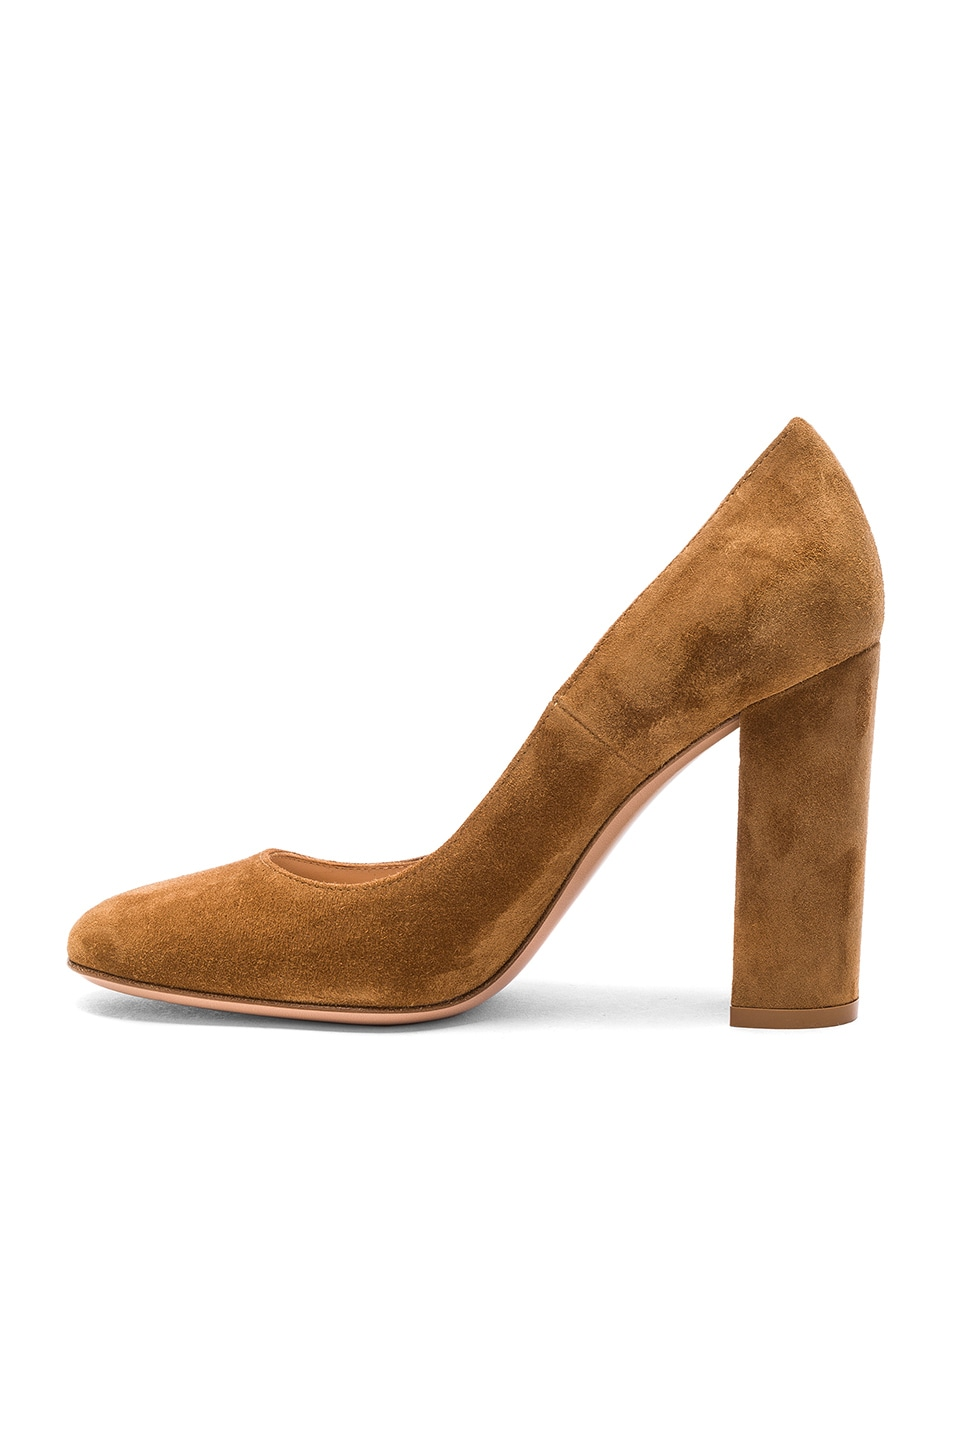 Image 5 of Gianvito Rossi Suede Chunky Heels in Almond